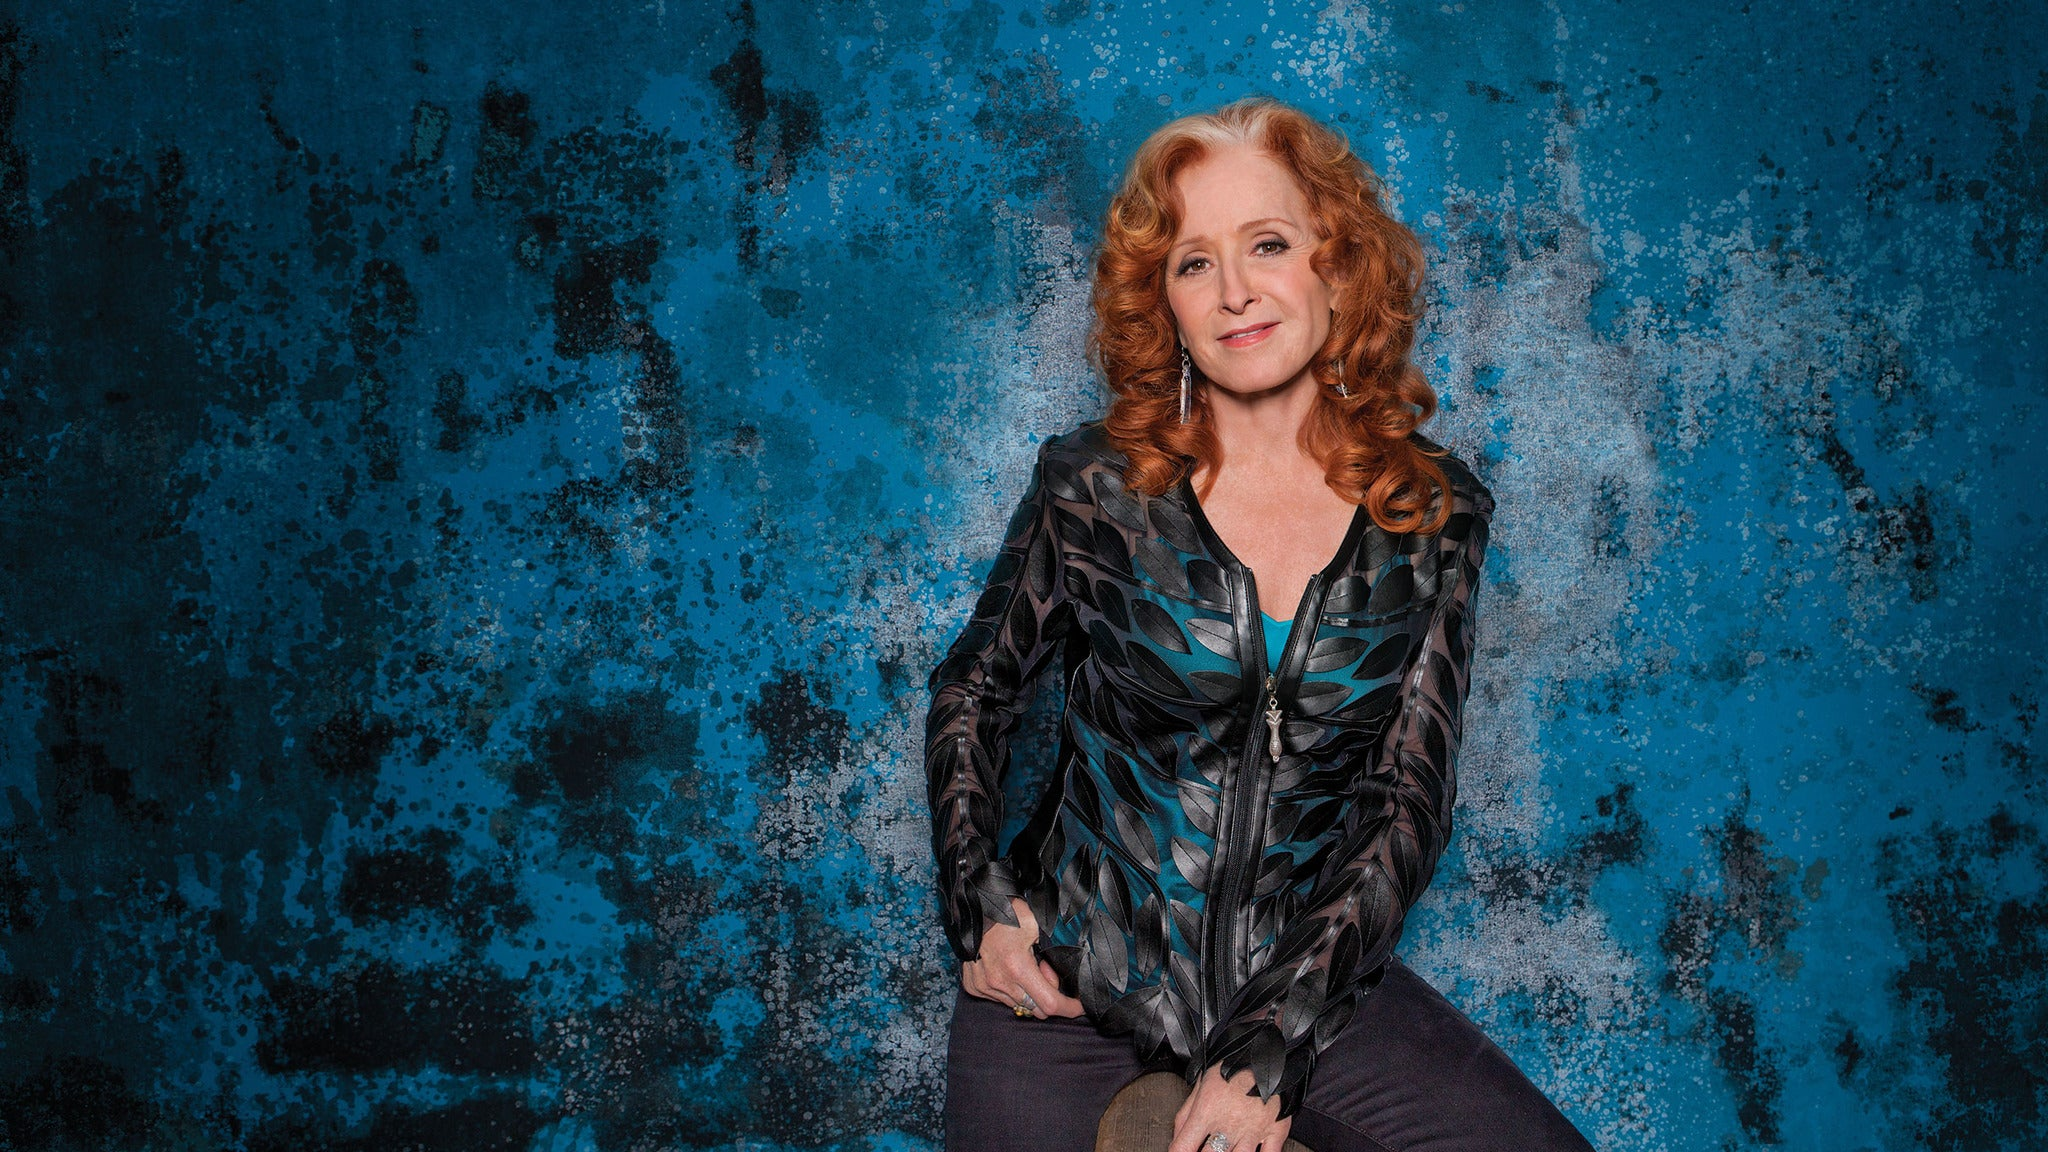 Bonnie Raitt at Pechanga Resort and Casino